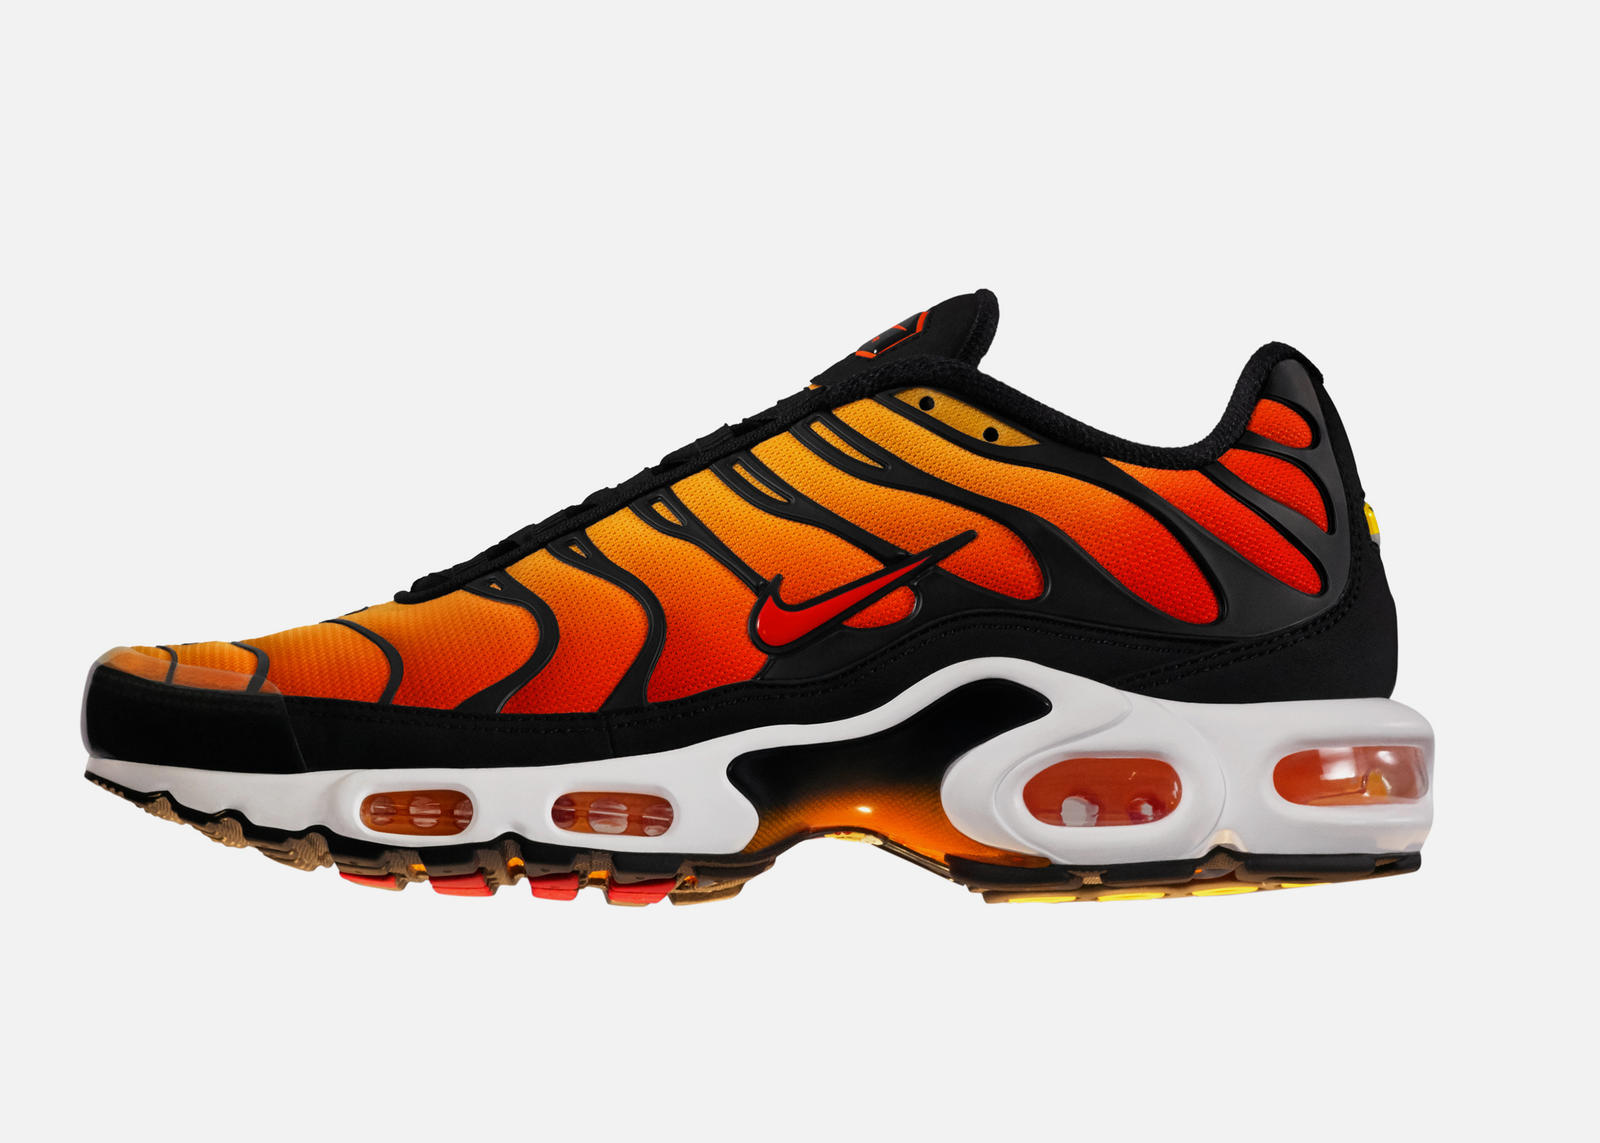 05585e1e00 The Untold Story of the Nike Air Max Plus 19